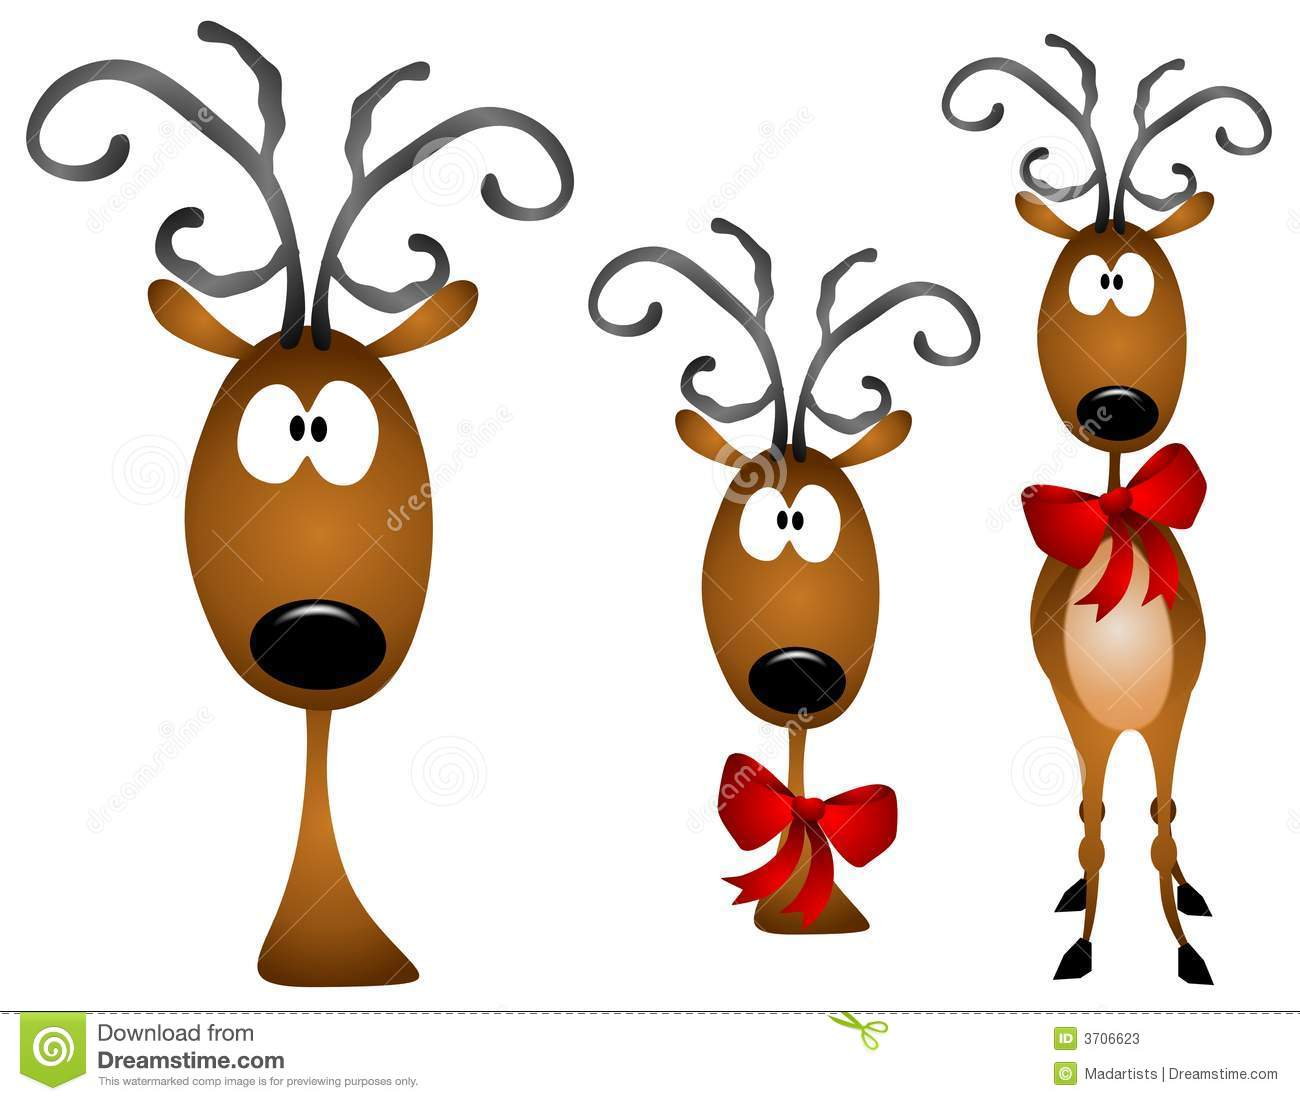 clip art illustration with your choice of 3 similar reindeer clip art ...